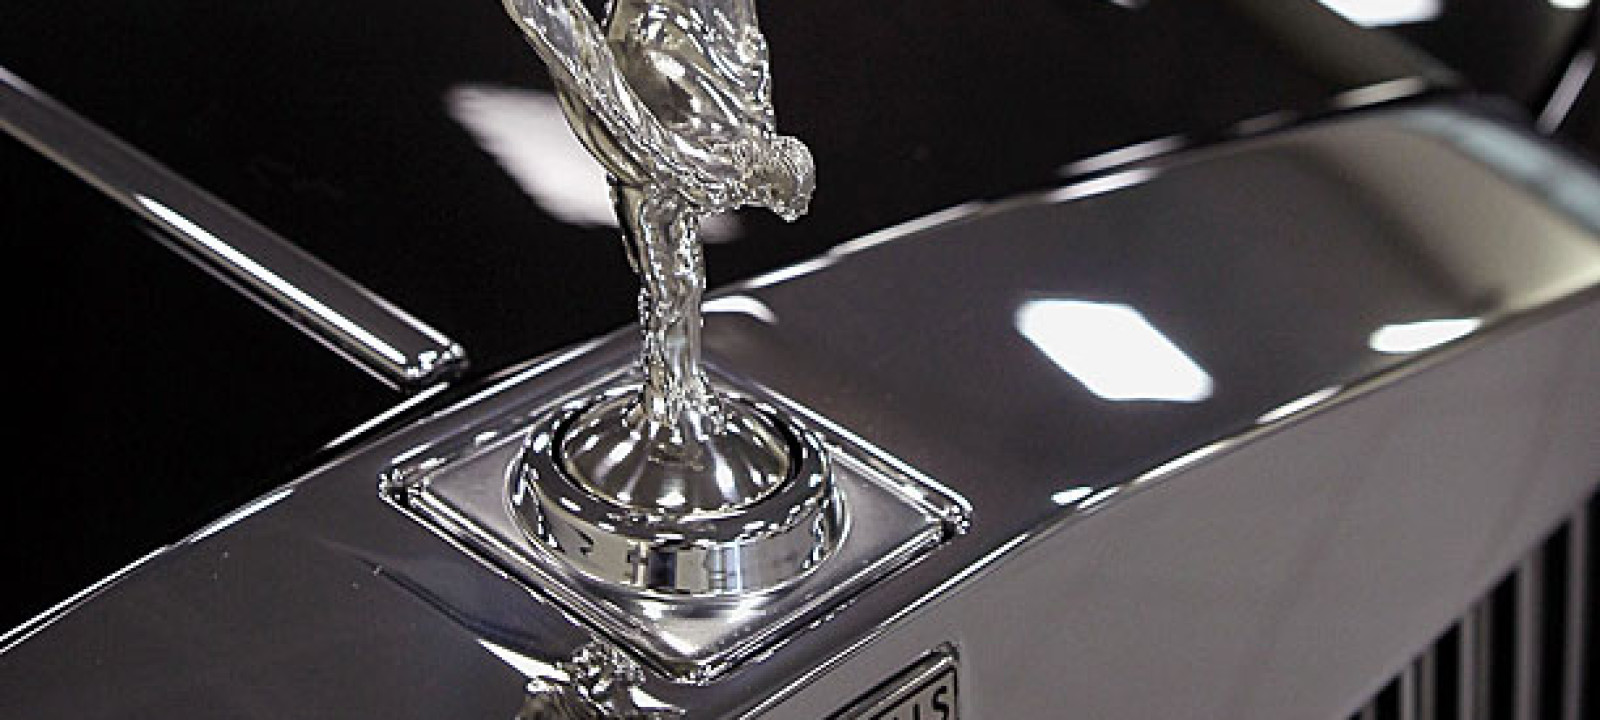 The 'Flying Lady' Rolls Royce hood ornament (PIc: Scott Olsen/Getty Images}